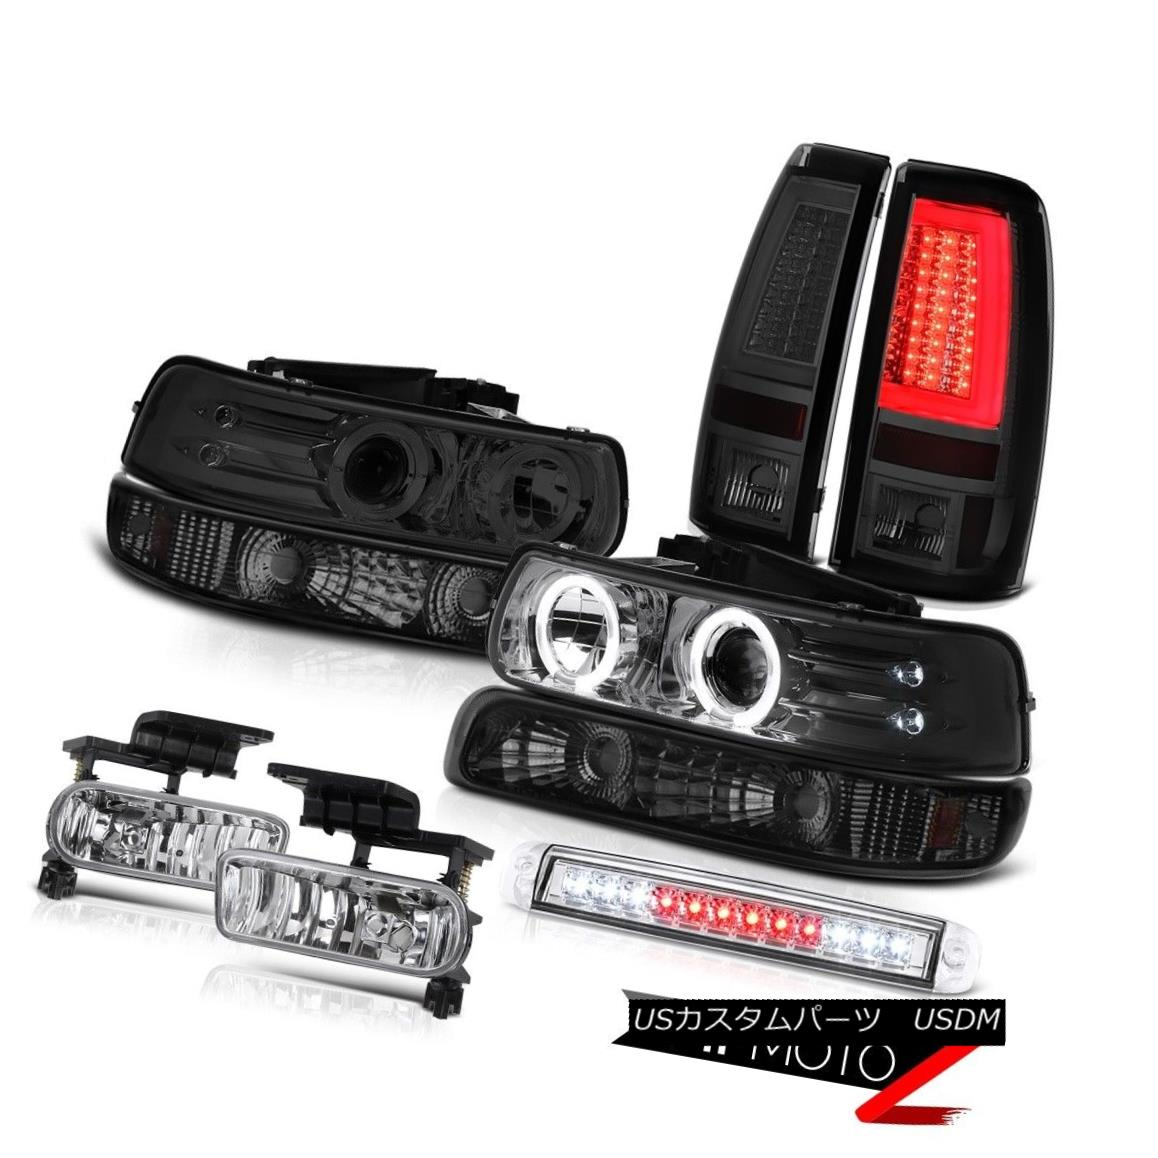 テールライト 99-02 Silverado 1500 Taillamps Roof Cargo Lamp Bumper Light Headlamps Fog Lights 99-02 Silverado 1500 Taillampsルーフカーゴランプバンパーライトヘッドランプフォグライト